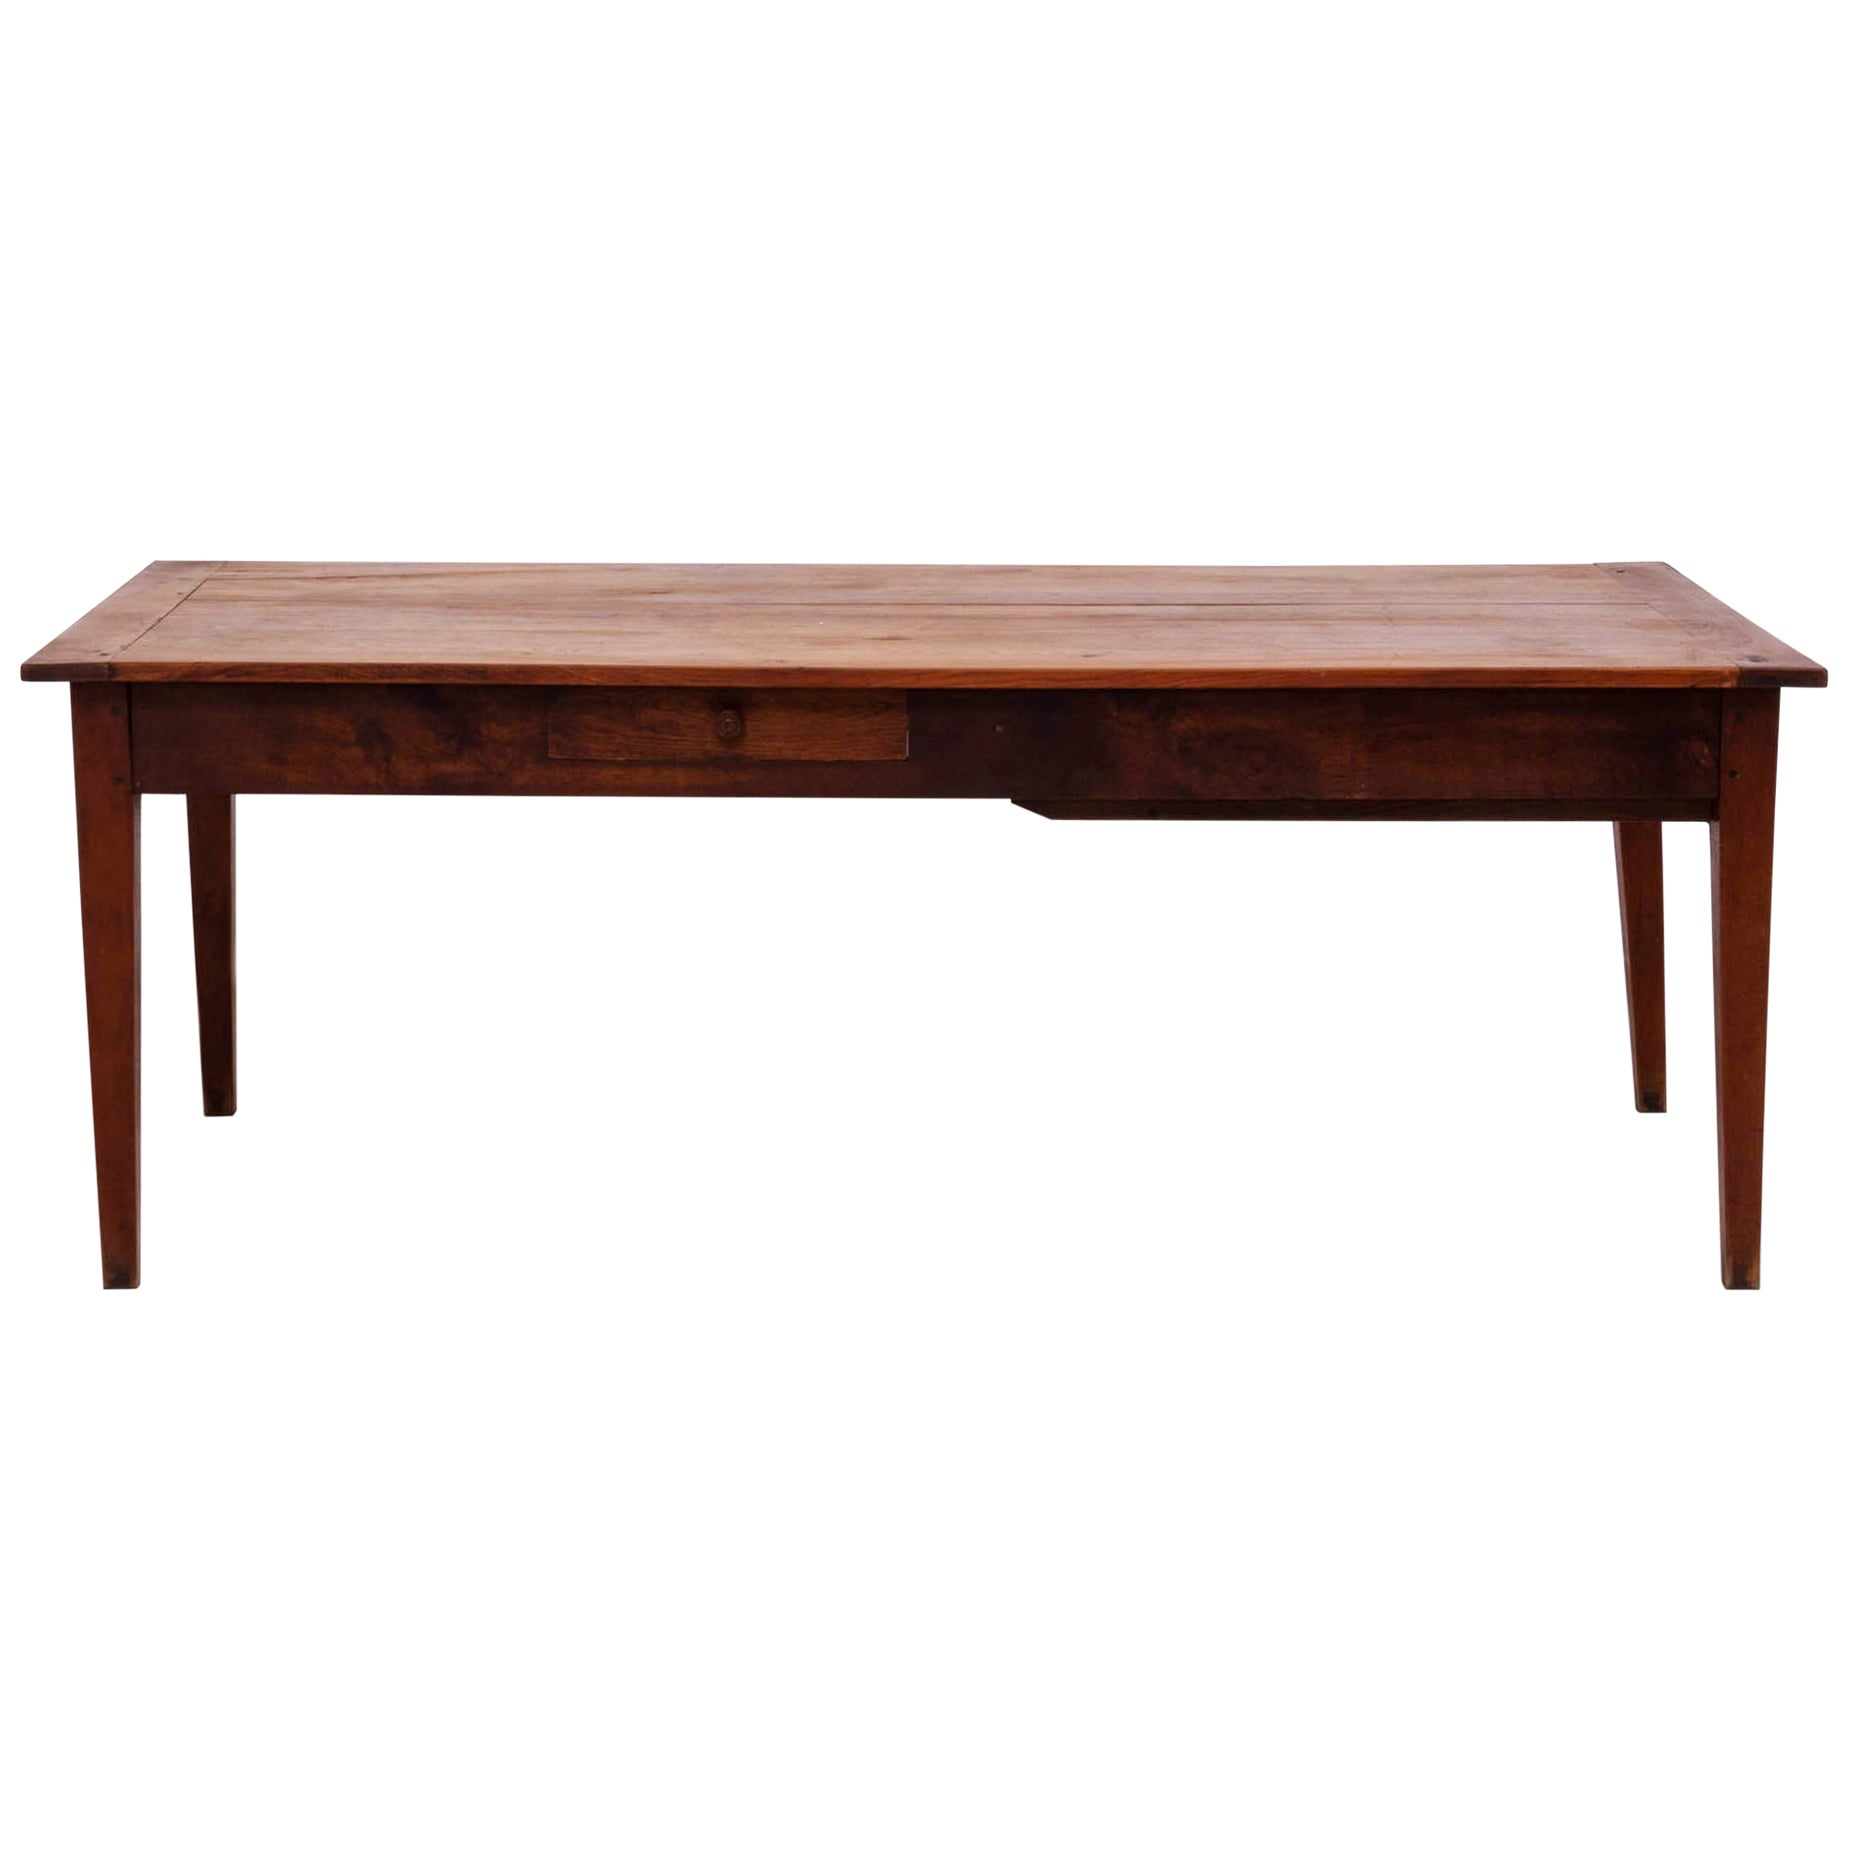 19th Century French Cherrywood and Oak Farmhouse Table